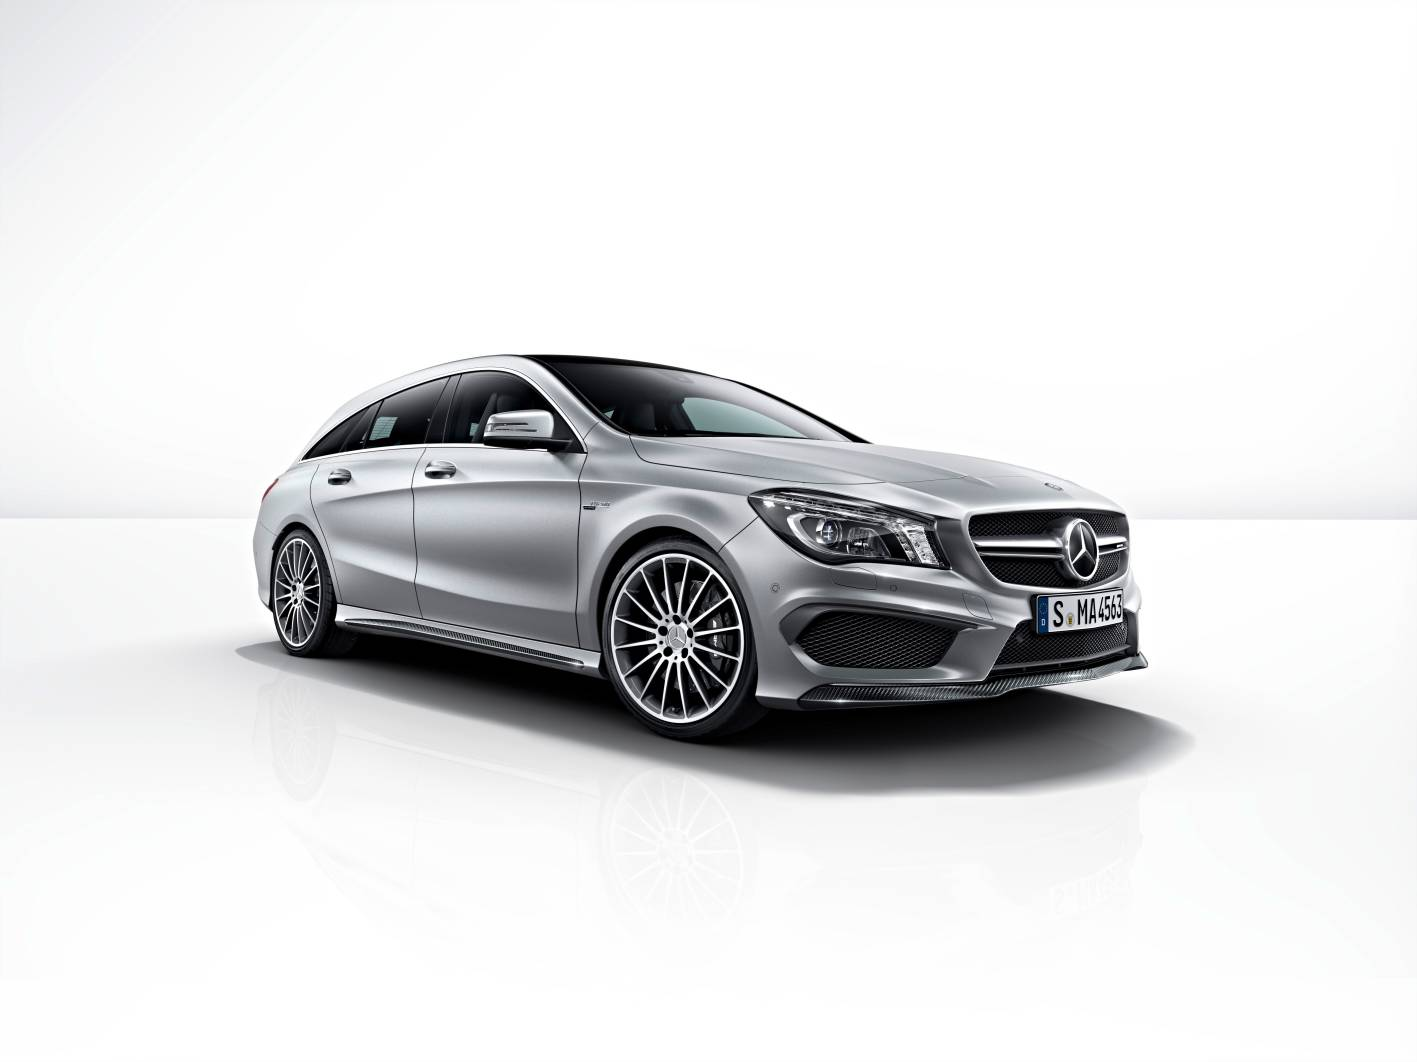 Mercedes Cars News Cla Shooting Brake Pricing Announced